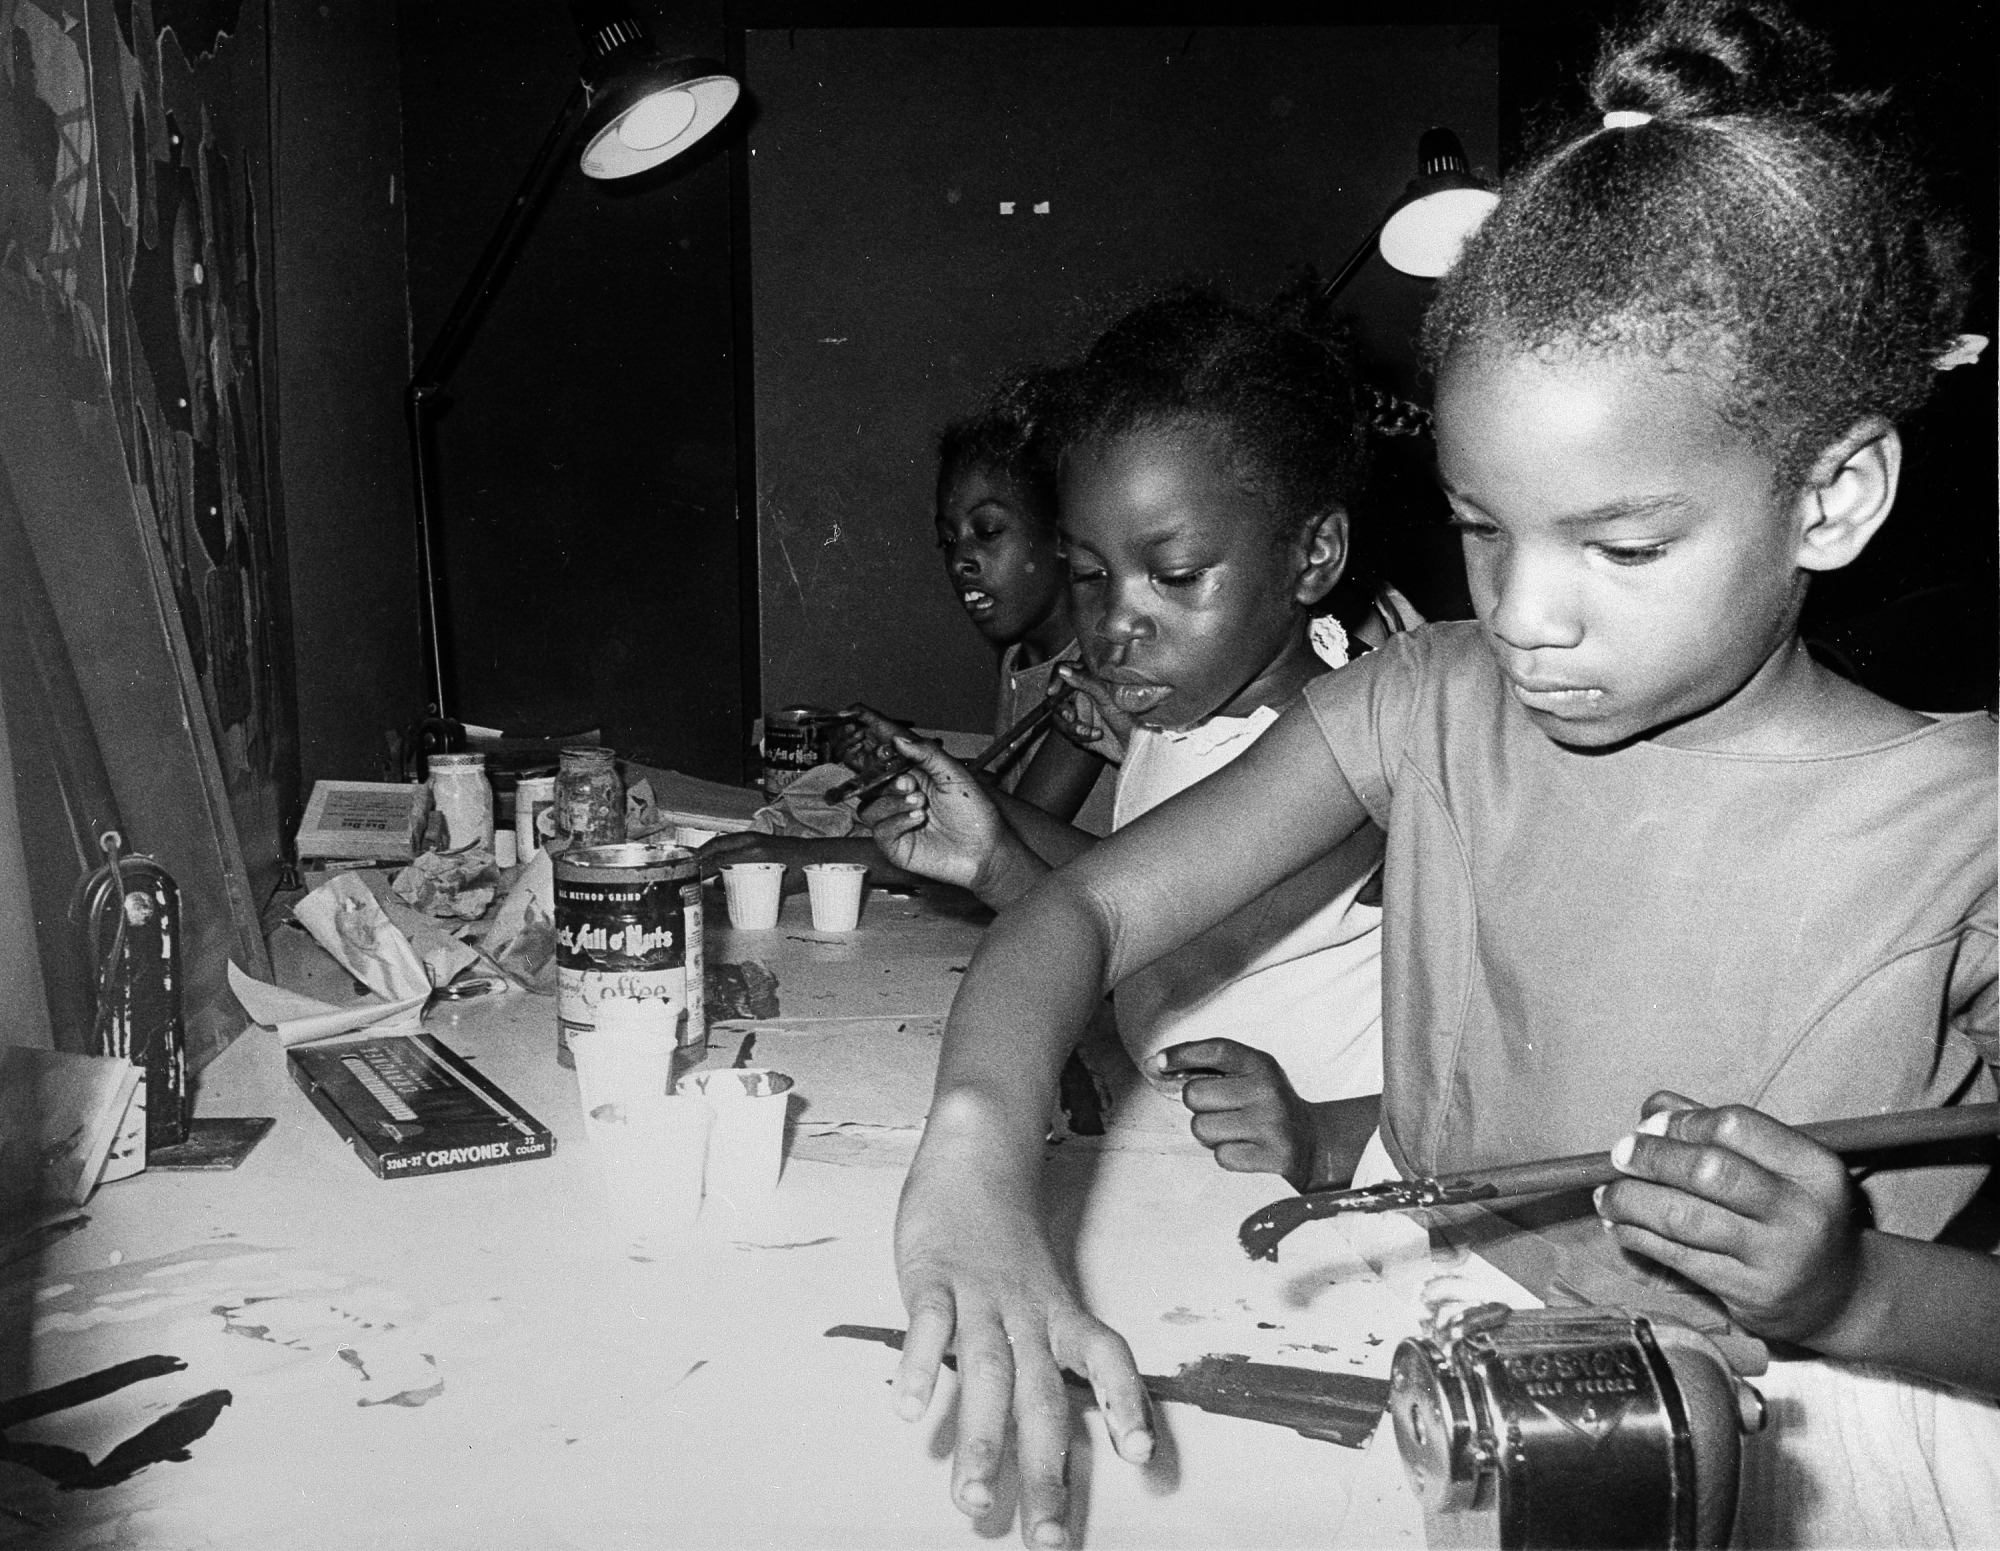 Youth Classes at ANM, by Unknown, 1968, Smithsonian Archives - History Div, 92-3567.